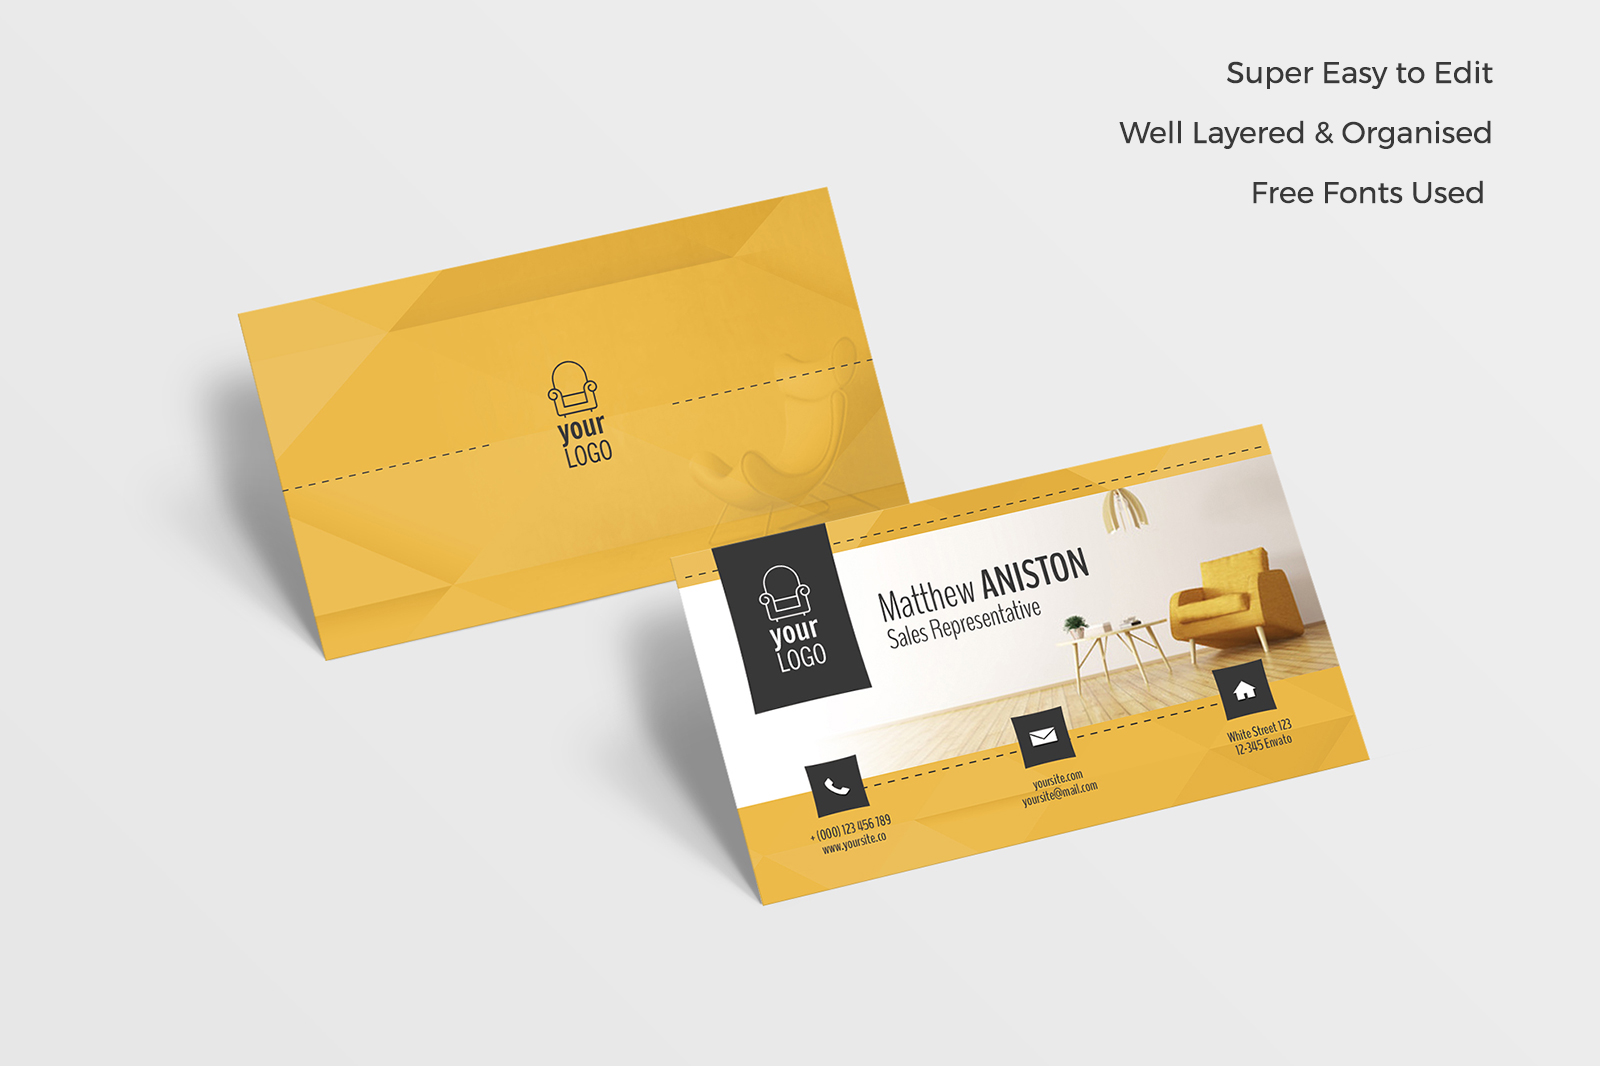 Furniture Business Card In Business Card Templates On Yellow Images